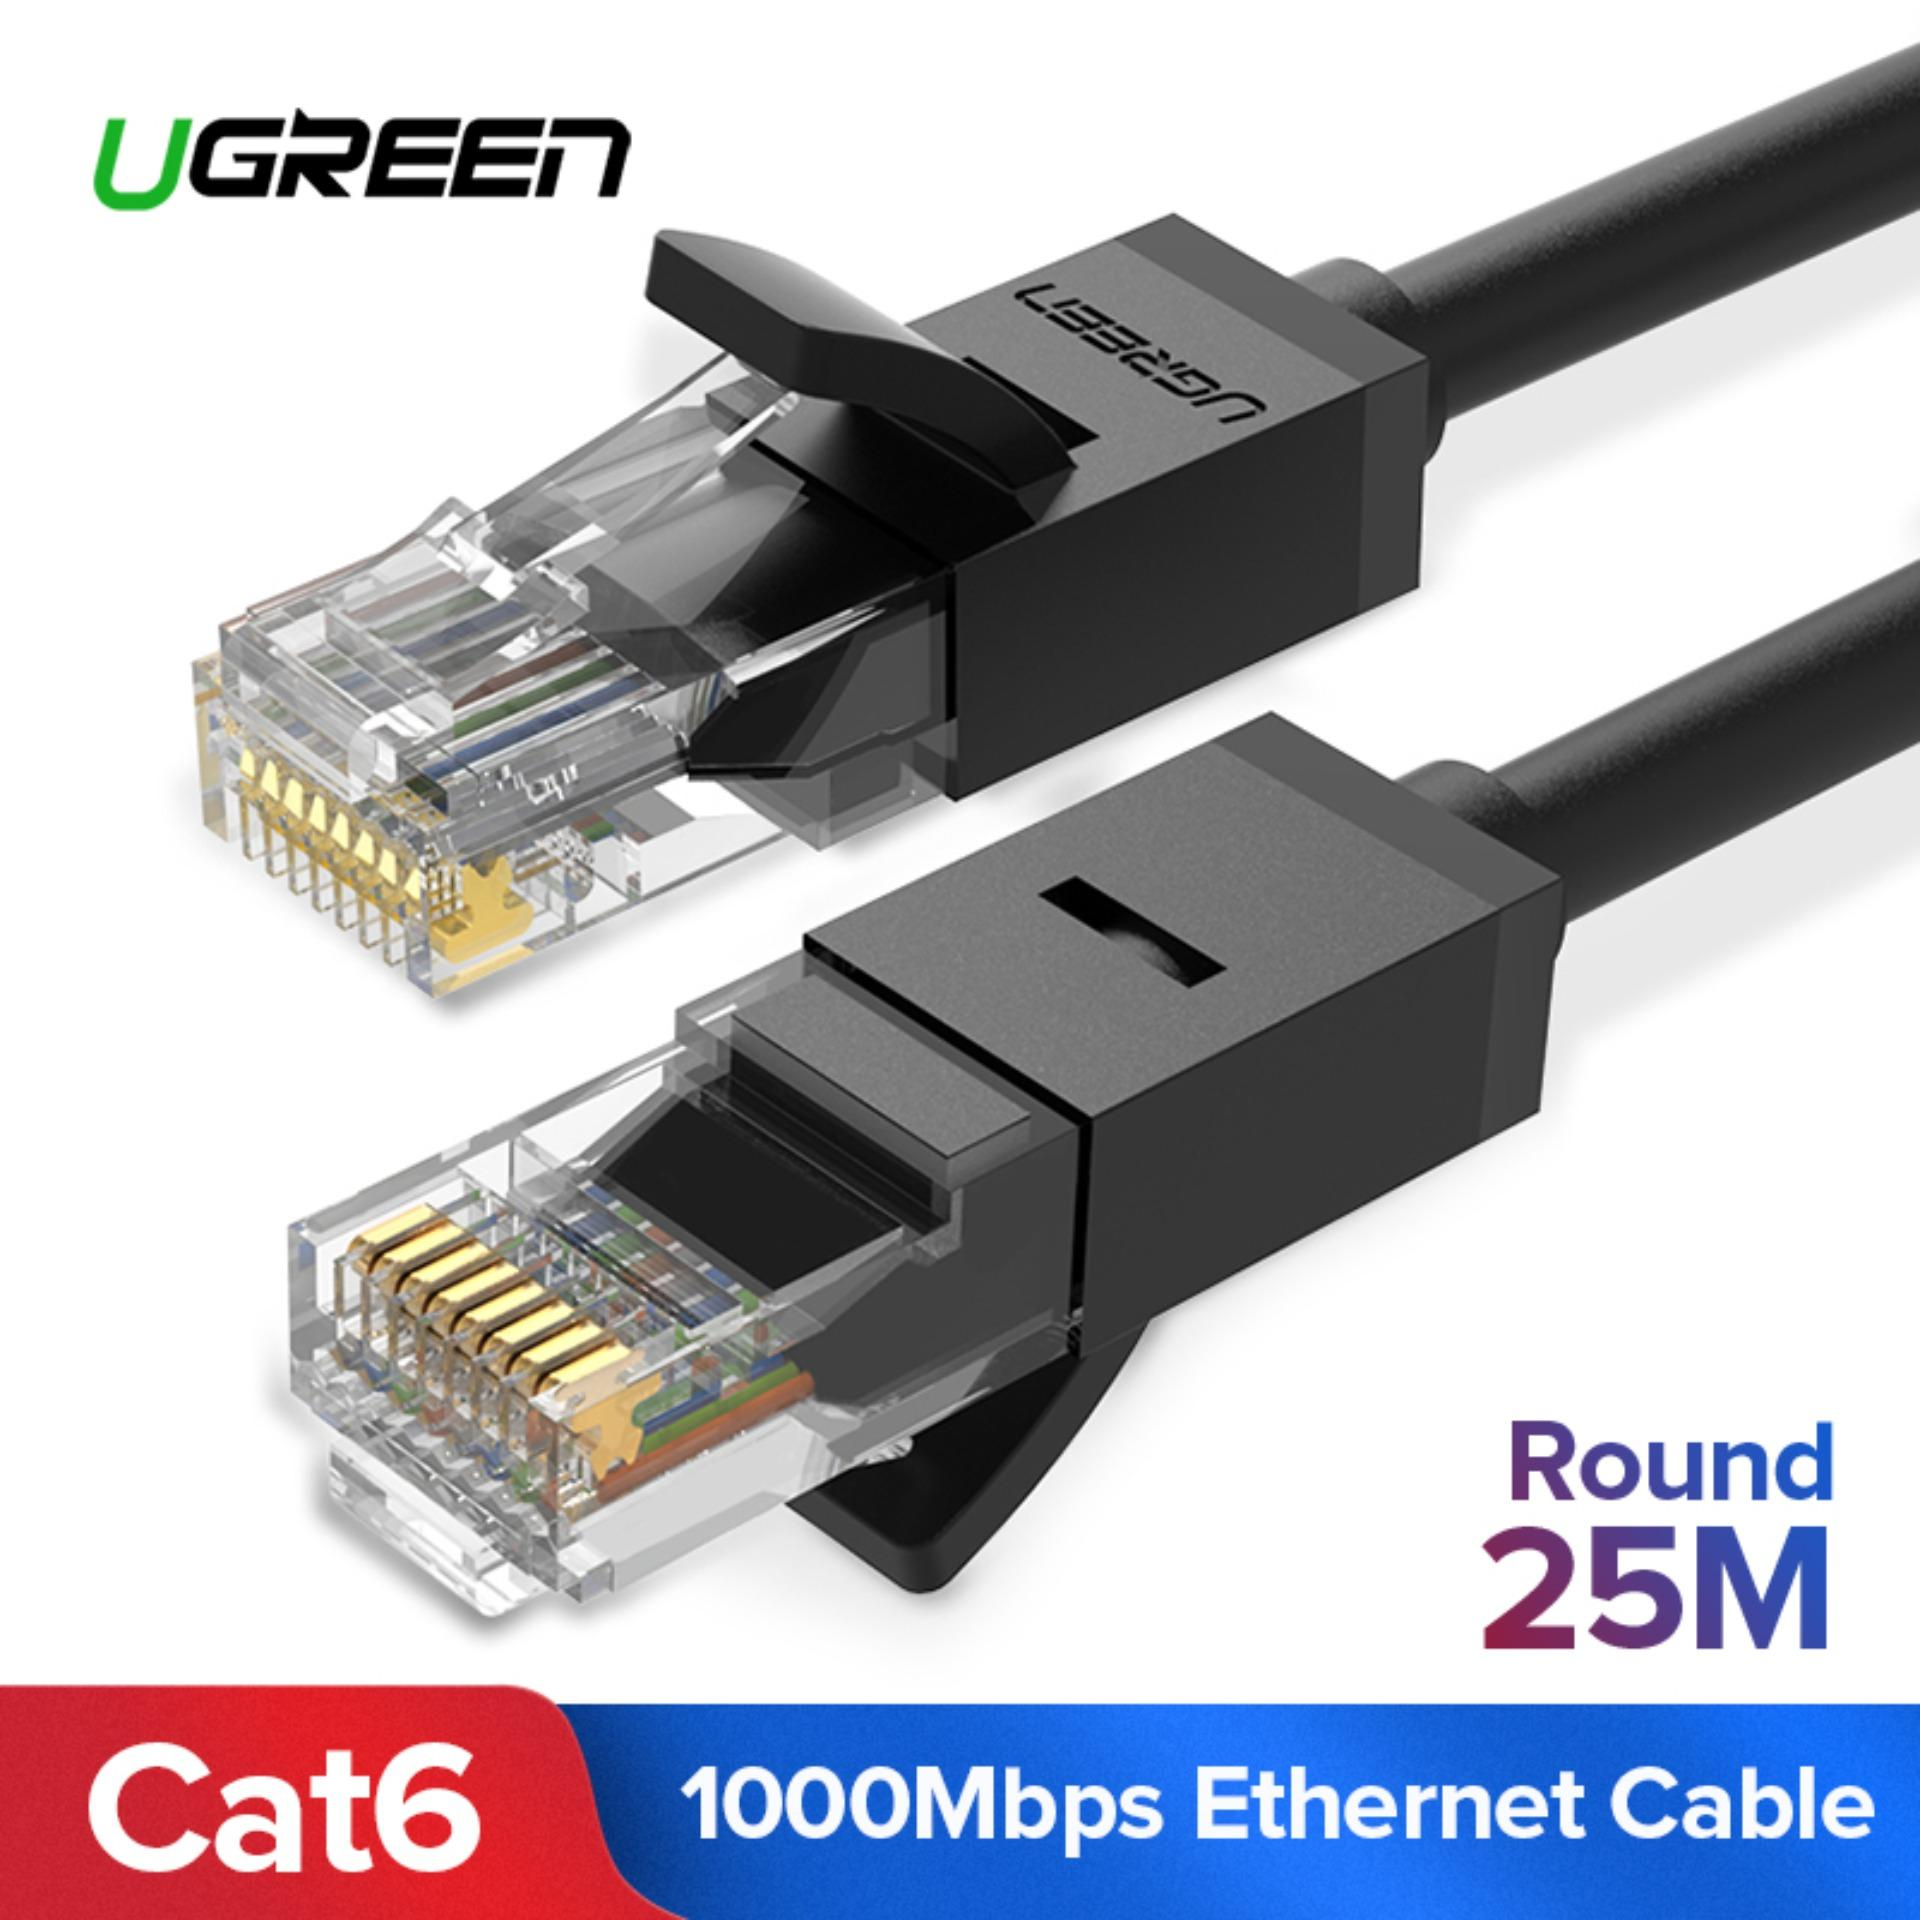 UGREEN 25Meter Cat6 Ethernet Patch Cable Gigabit RJ45 Network Wire Lan Cable Plug Connector for Mac, Computer, PC, Router, Modem, Printer, XBOX, PS4, PS3, PSP (Black)-Intl